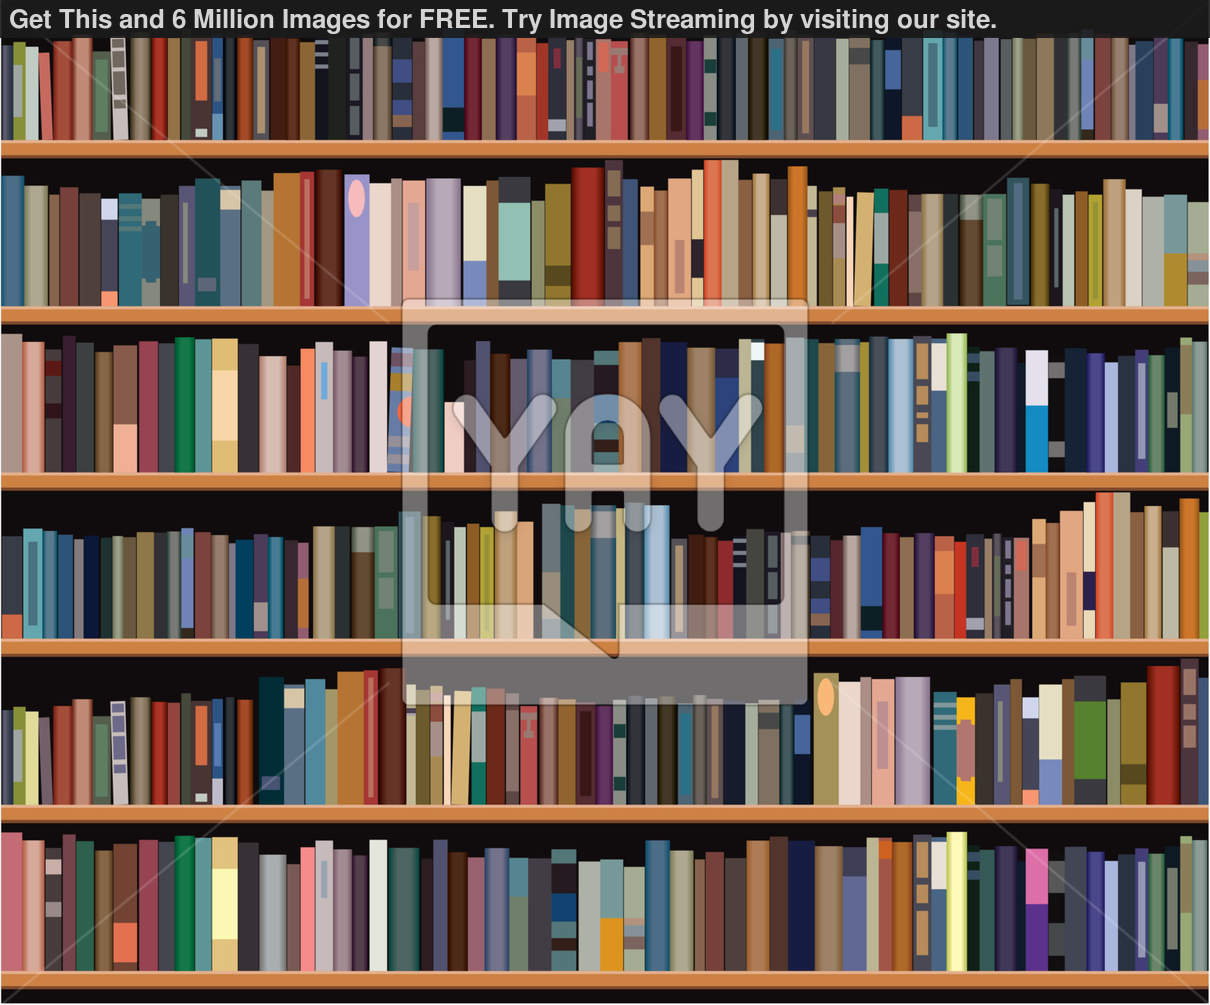 bookshelf desktop wallpaper wallpapersafari